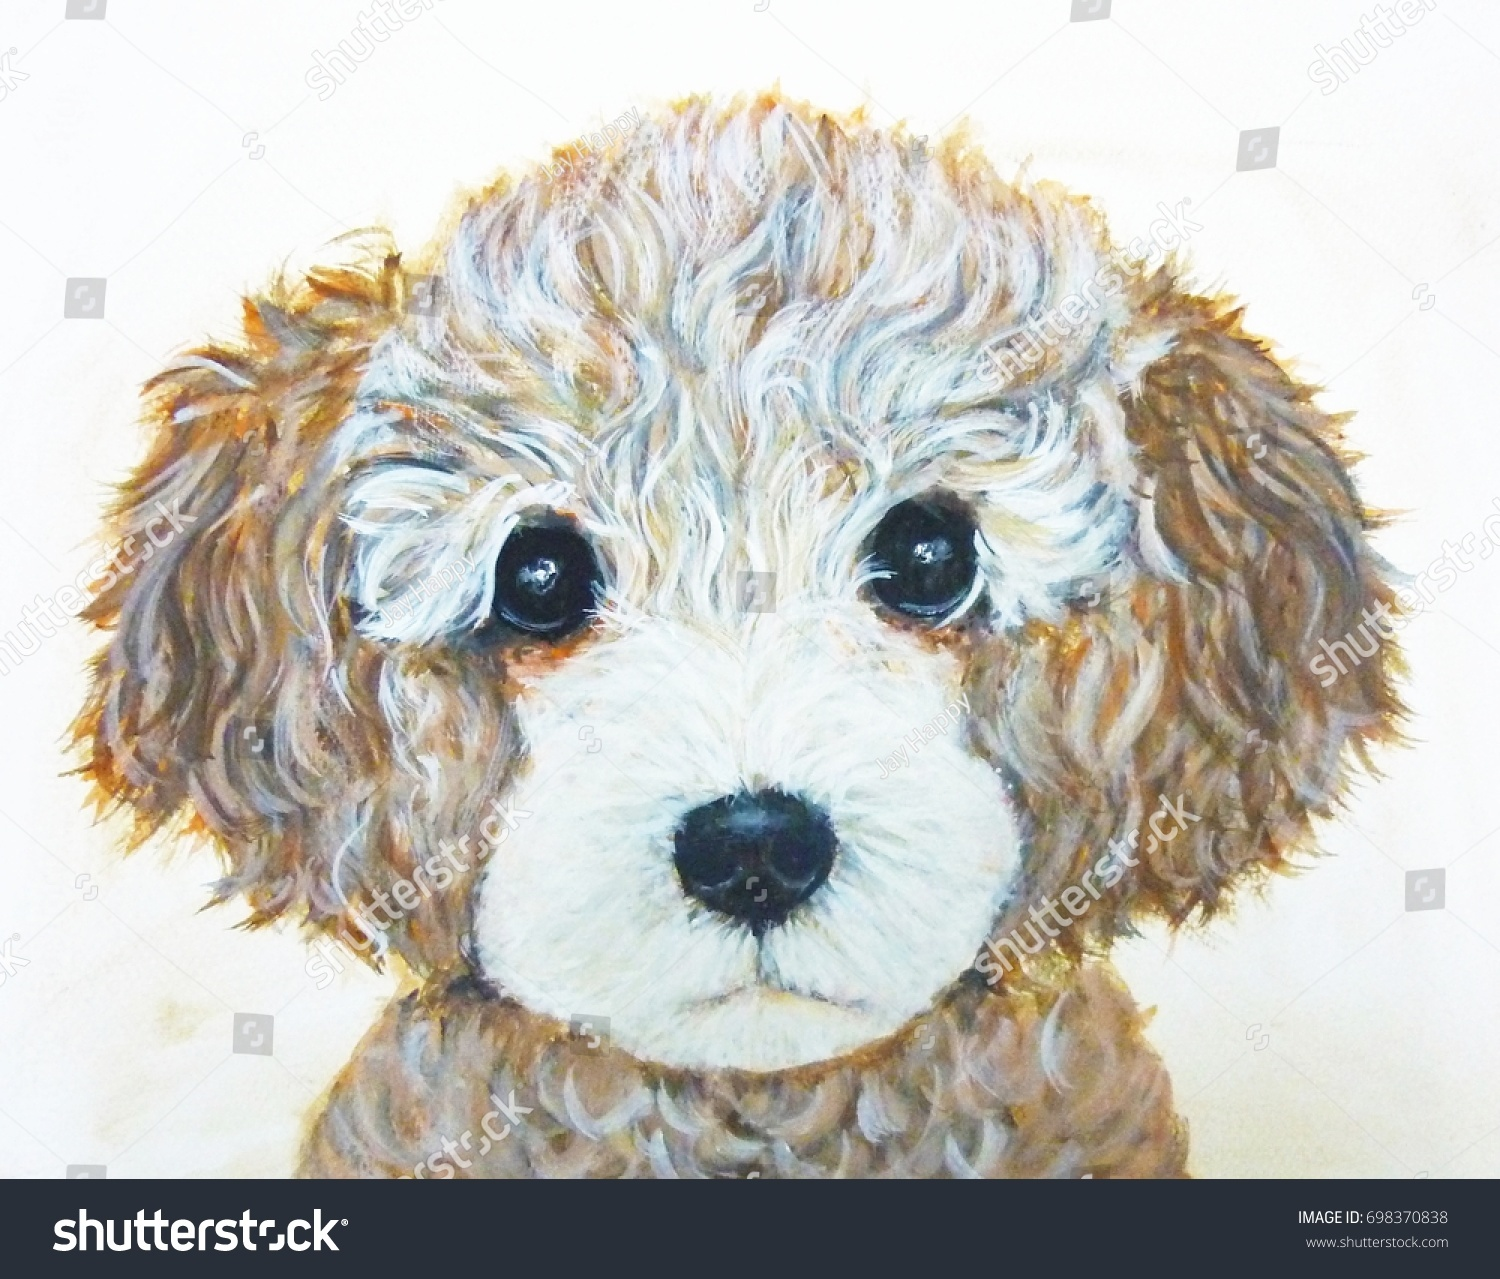 Ilustracion De Stock Sobre Poodle Dog Art Cute Puppy Wallpaper 698370838